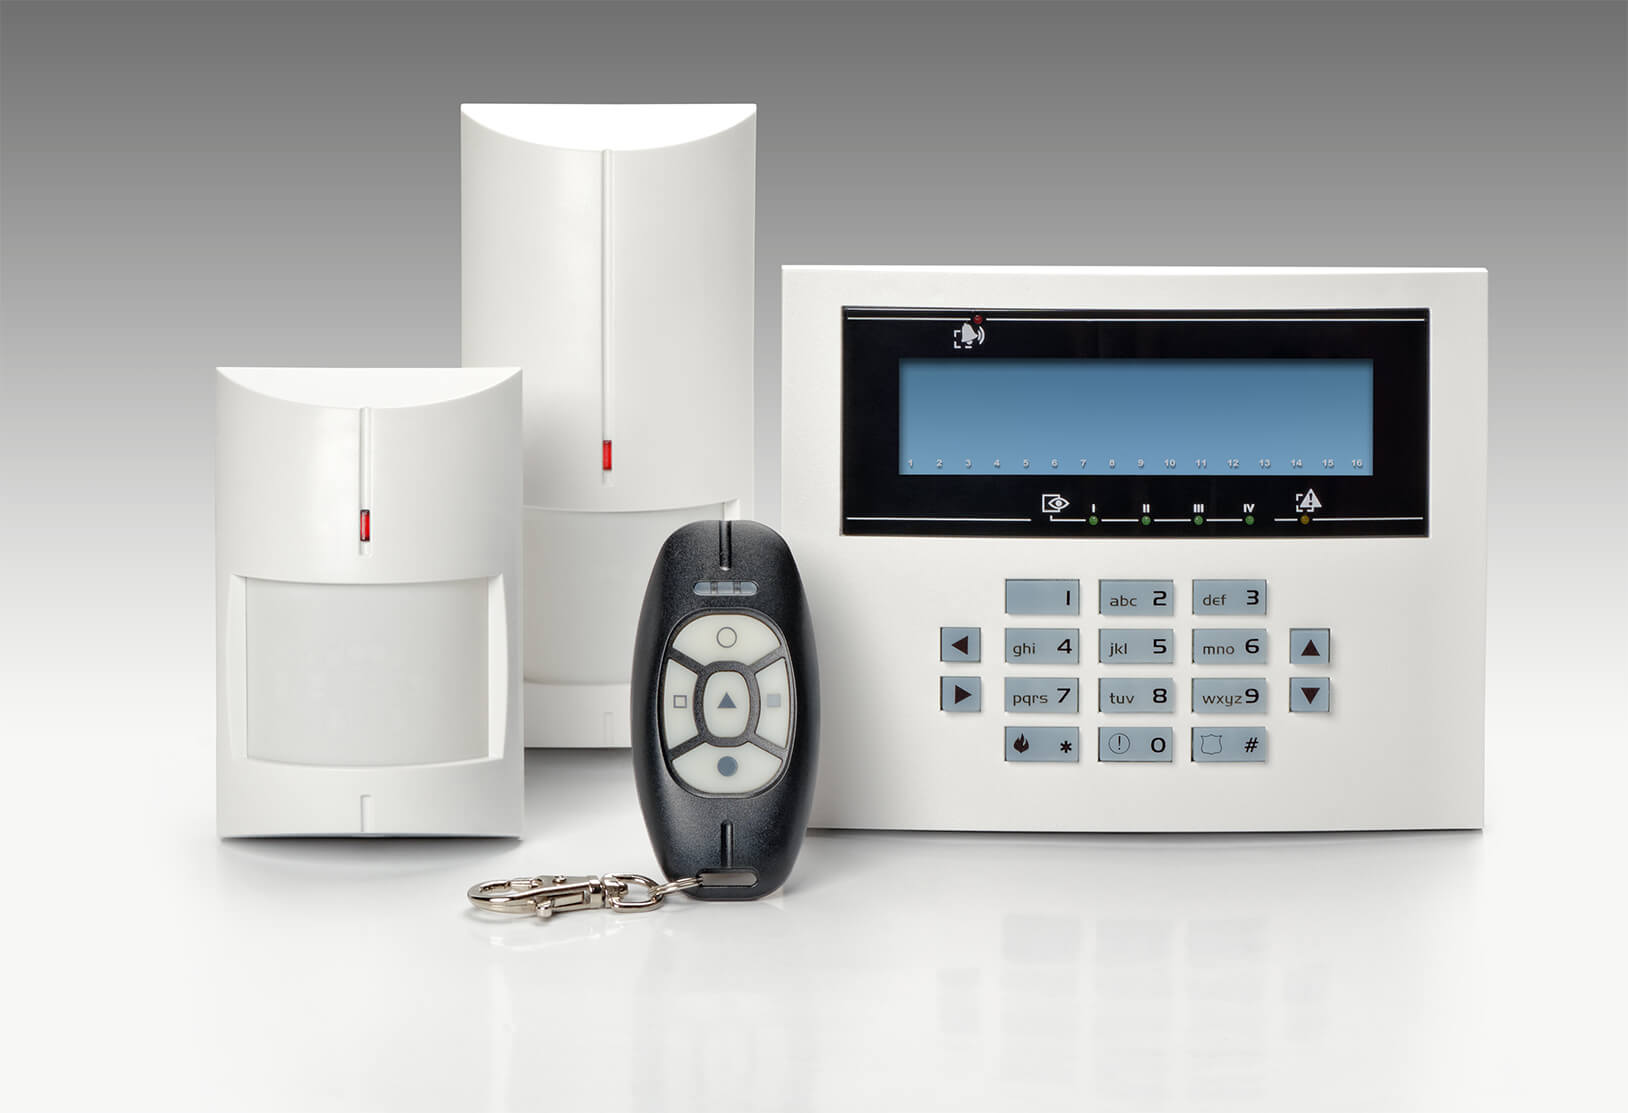 Business & Residential NACOSS Approved Burglar Alarms In Acton W2 - Local Acton W2 security company.Call 02078872244 - Dedicated to Safety & Security. Companies, shops and homes ..